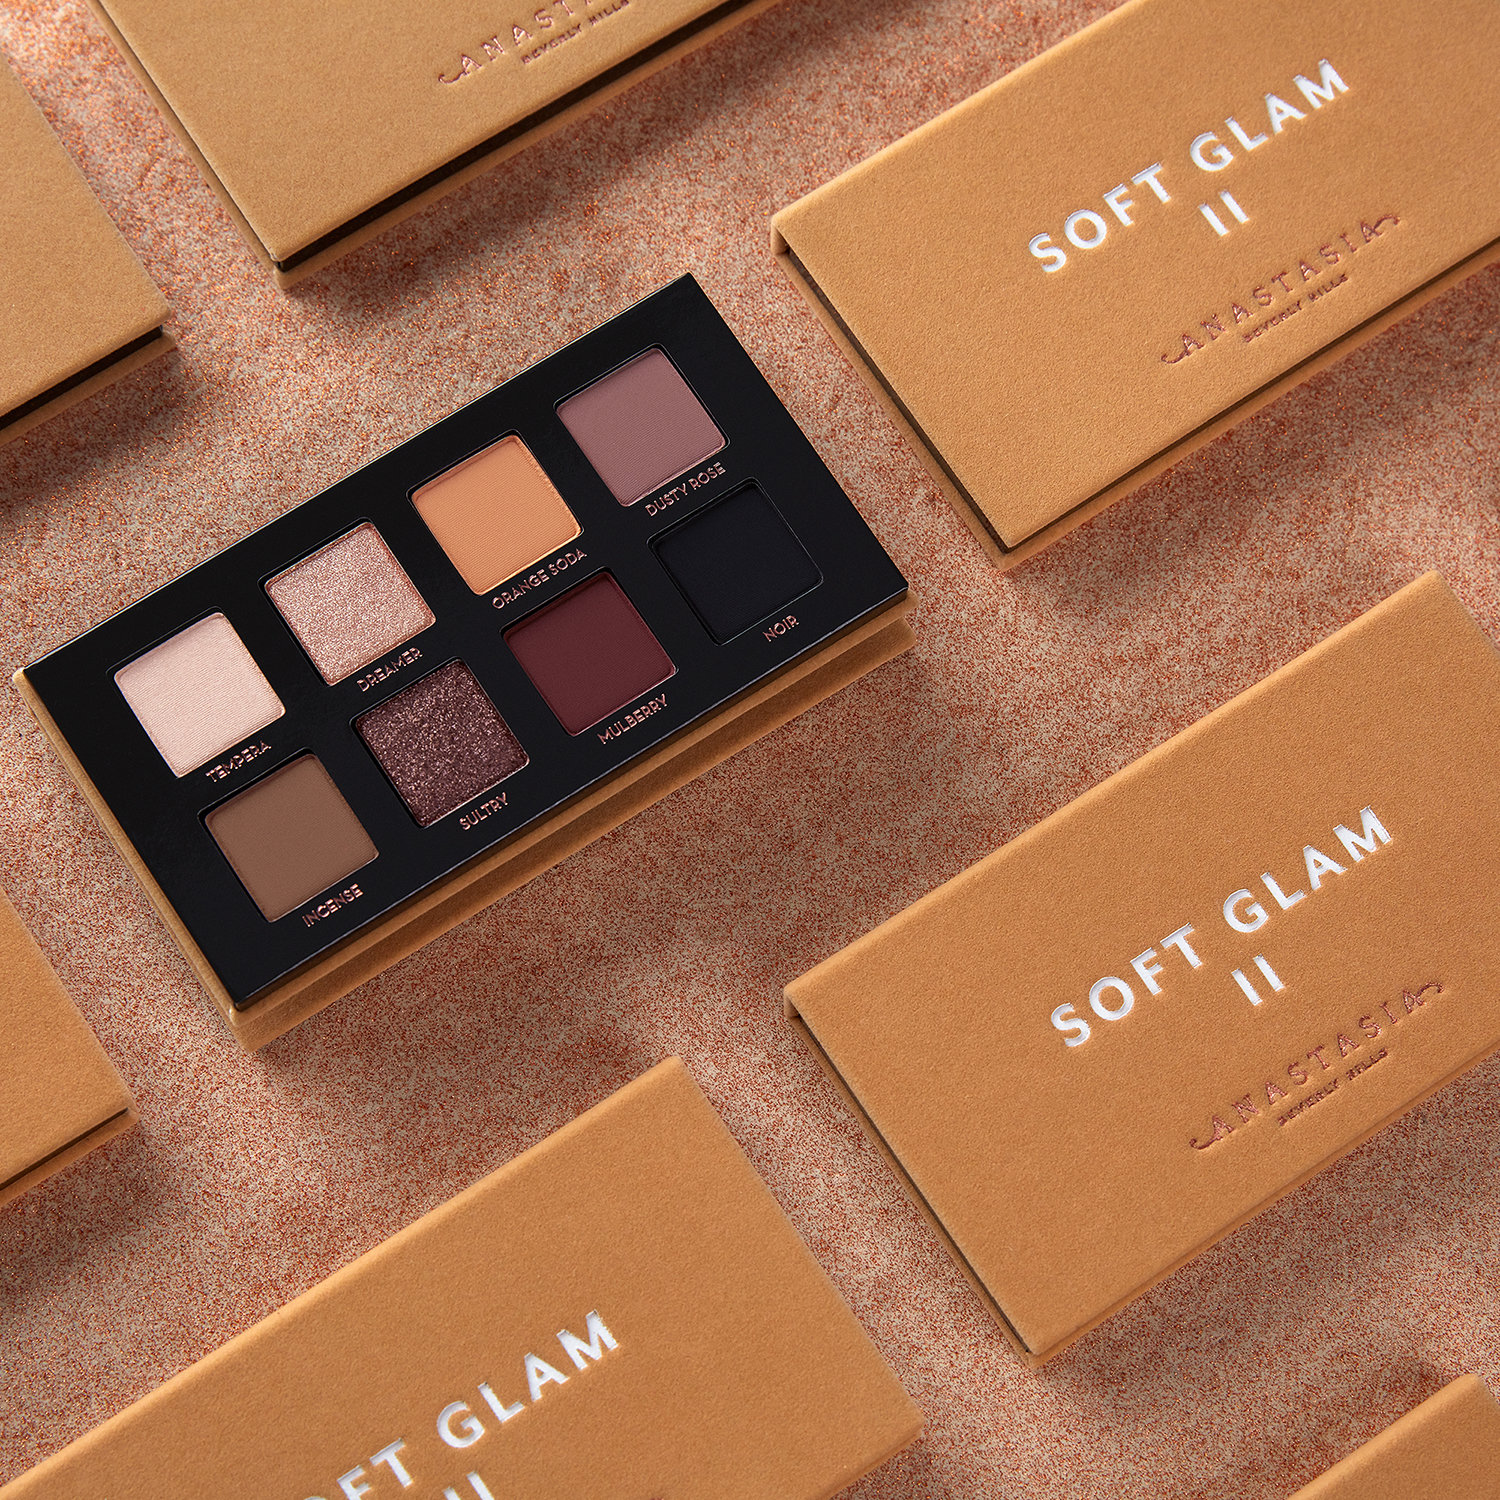 Alternate product image for Soft Glam II Mini Eye Shadow Palette shown with the description.